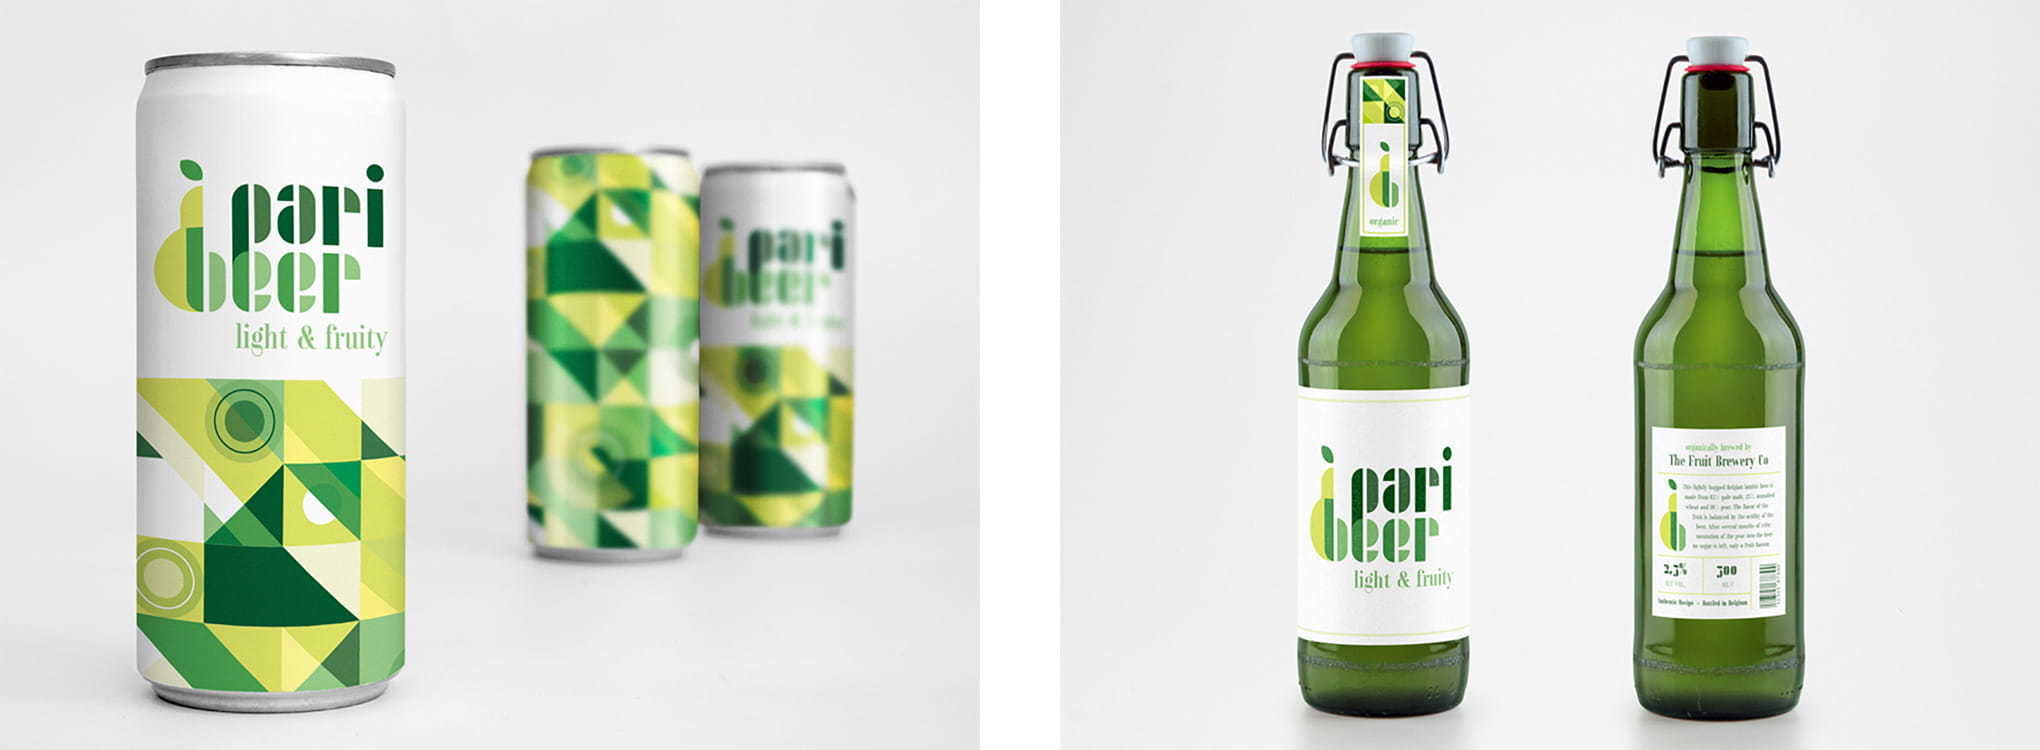 I created this fictional beer brewing brand named Paribeer, presented in 2 different ways: on a beer can and the traditional bottled way.